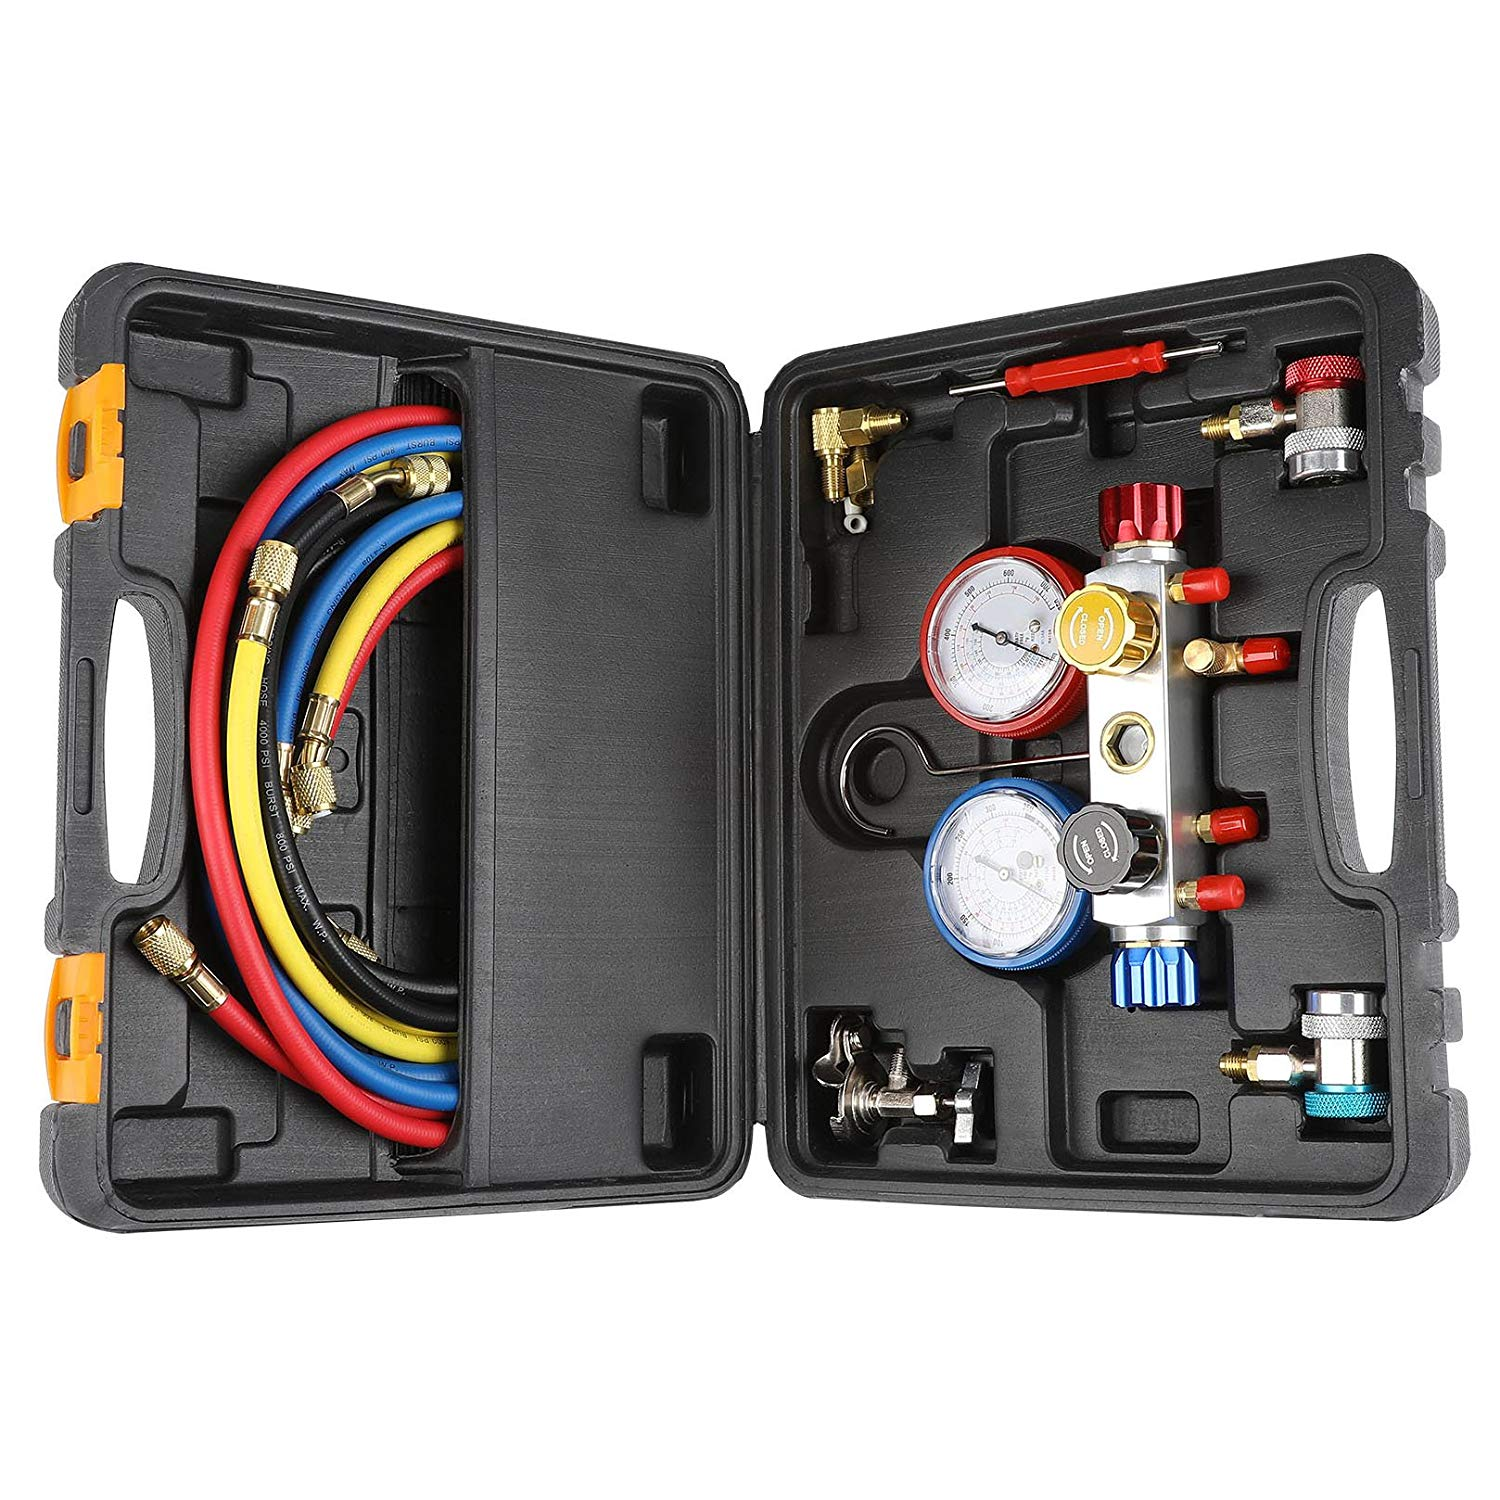 4 Way AC Diagnostic Manifold Gauge Set for Freon Charging and Vacuum Pump Evacuation, Fits R134A R410A and R22 Refrigerants, with 5FT Hose, 3 ACME Tank.